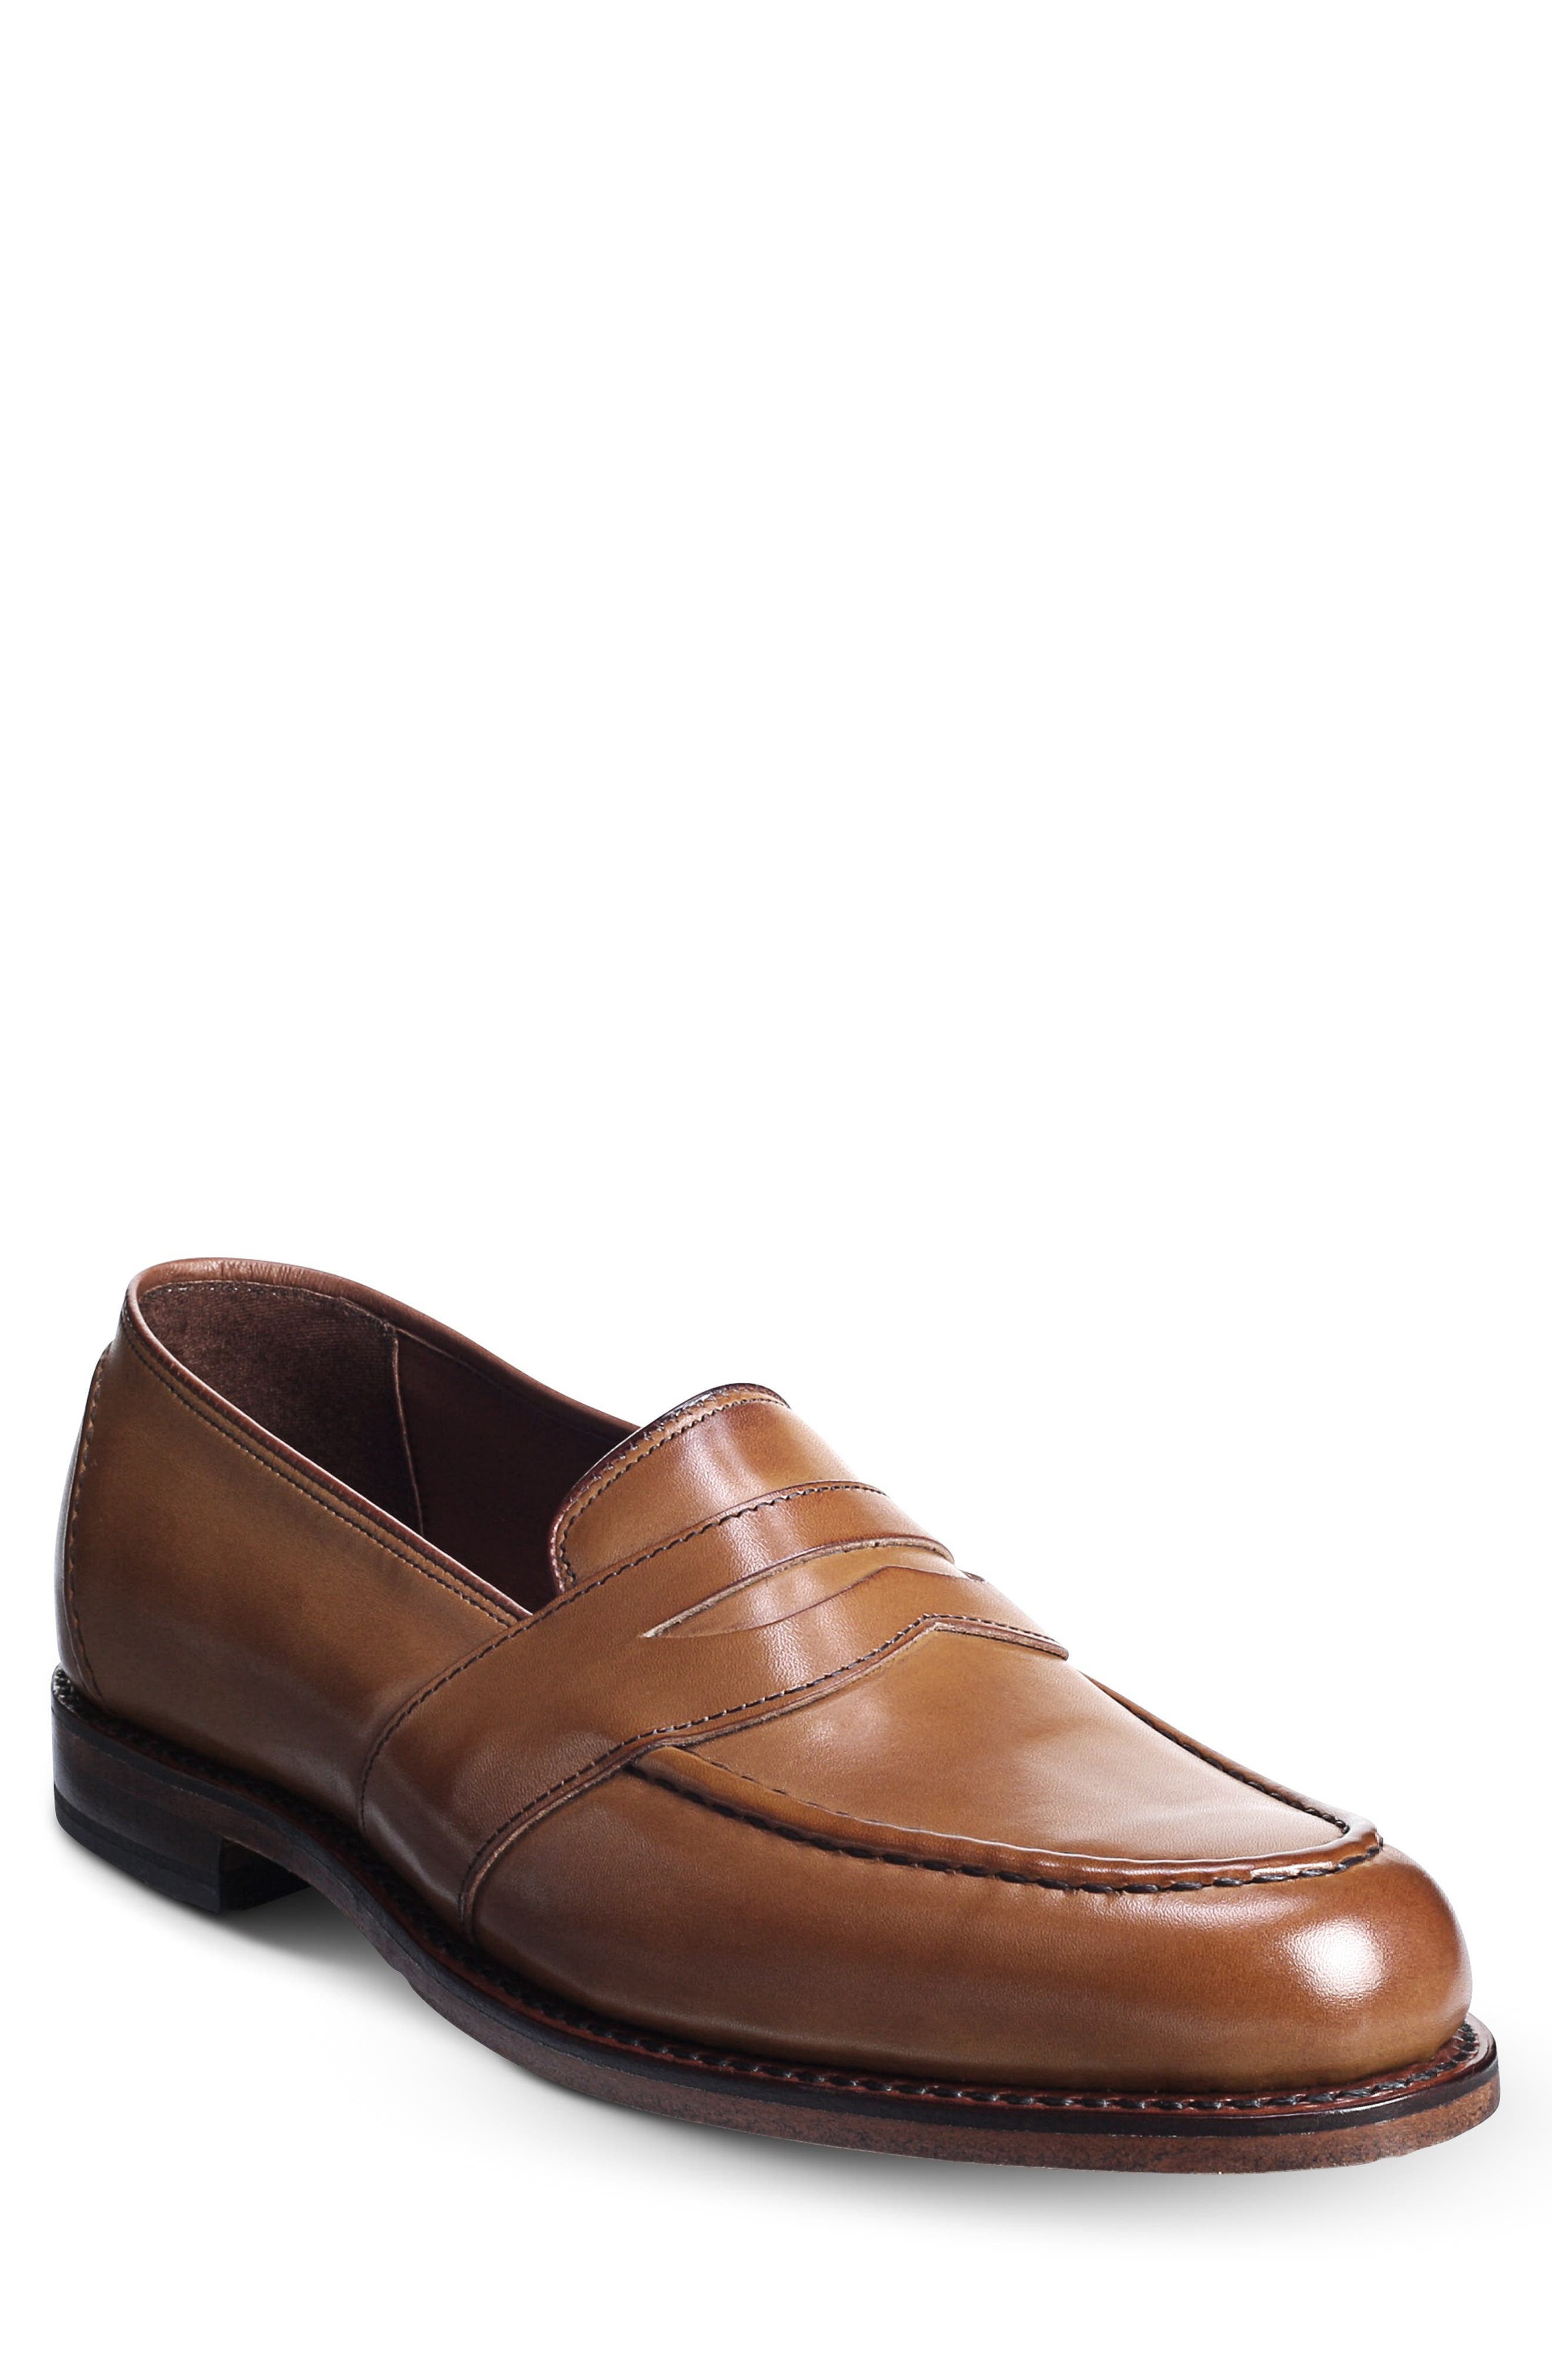 A sleek penny loafer features handsome welted construction and earthy leather for a classic picture. Allen Edmonds has been making shoes in America for nearly 100 years using fine leathers, a 212-step crafting process and 360 degree Goodyear welt construction to allow for recrafting to extend the life of the shoe. Style Name: Allen Edmonds Randolph Loafer (Men). Style Number: 126721. Available in stores.